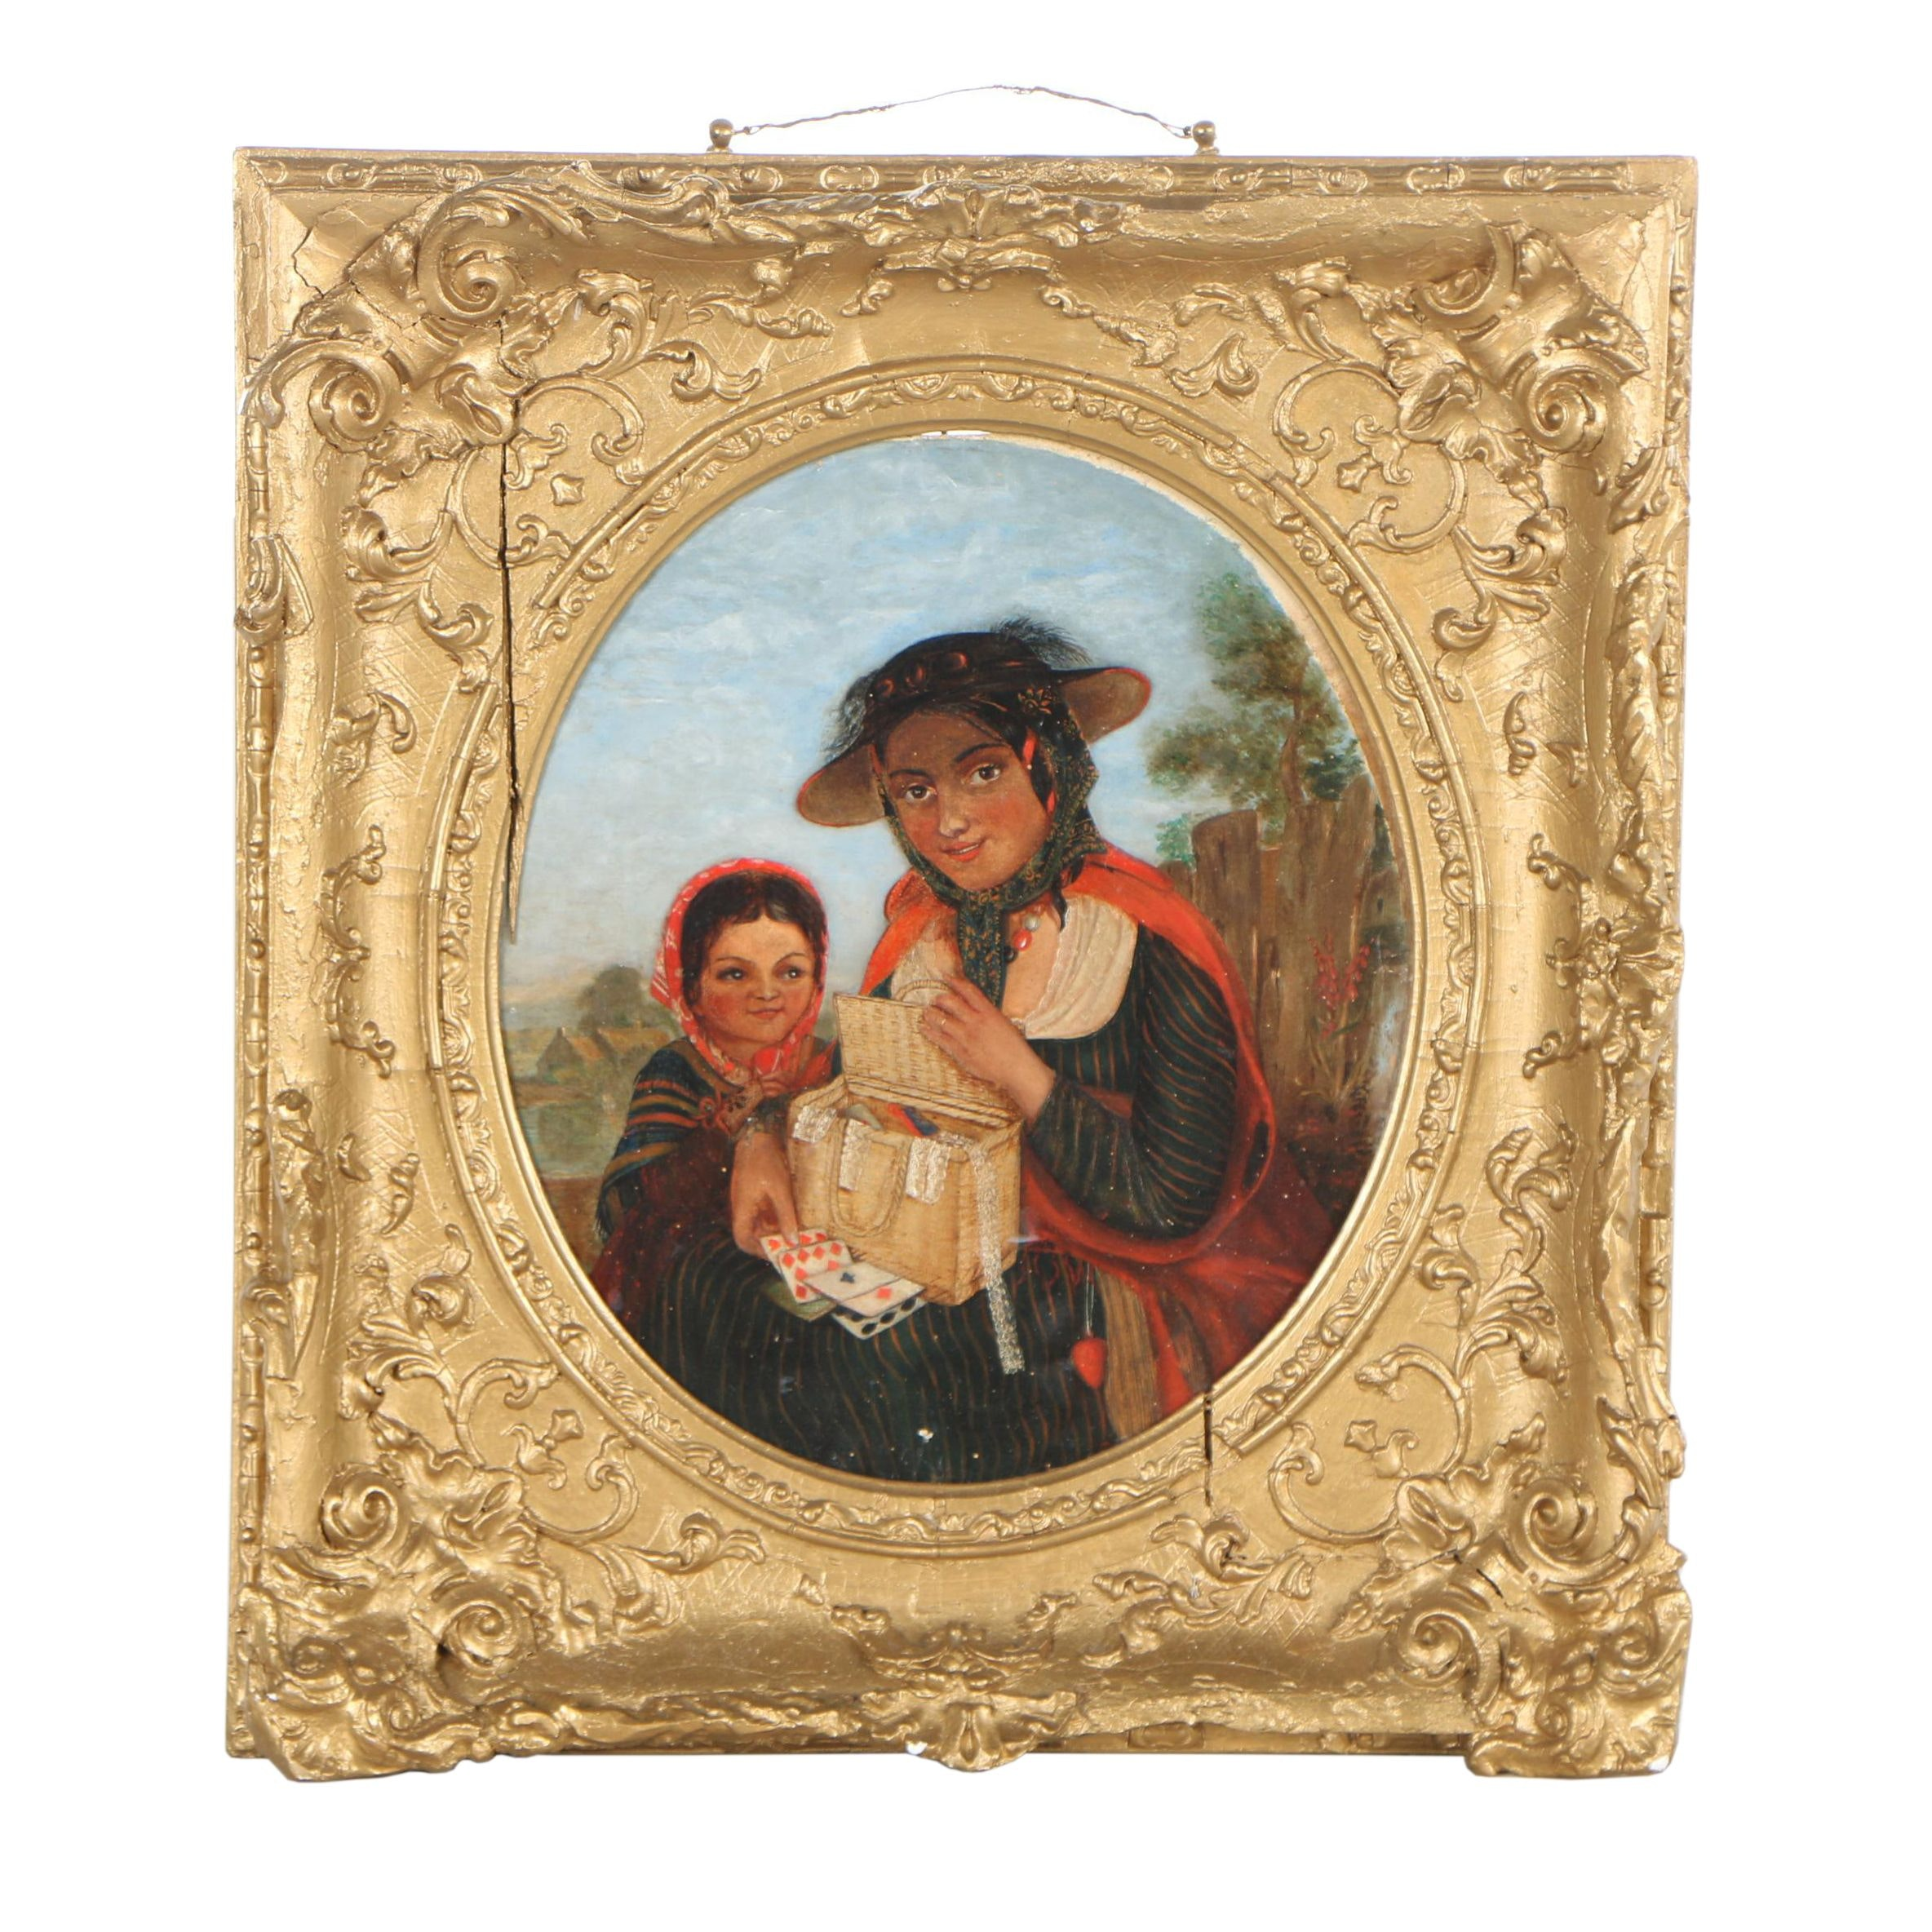 Academic Style Portrait Oil Painting, late 19th century